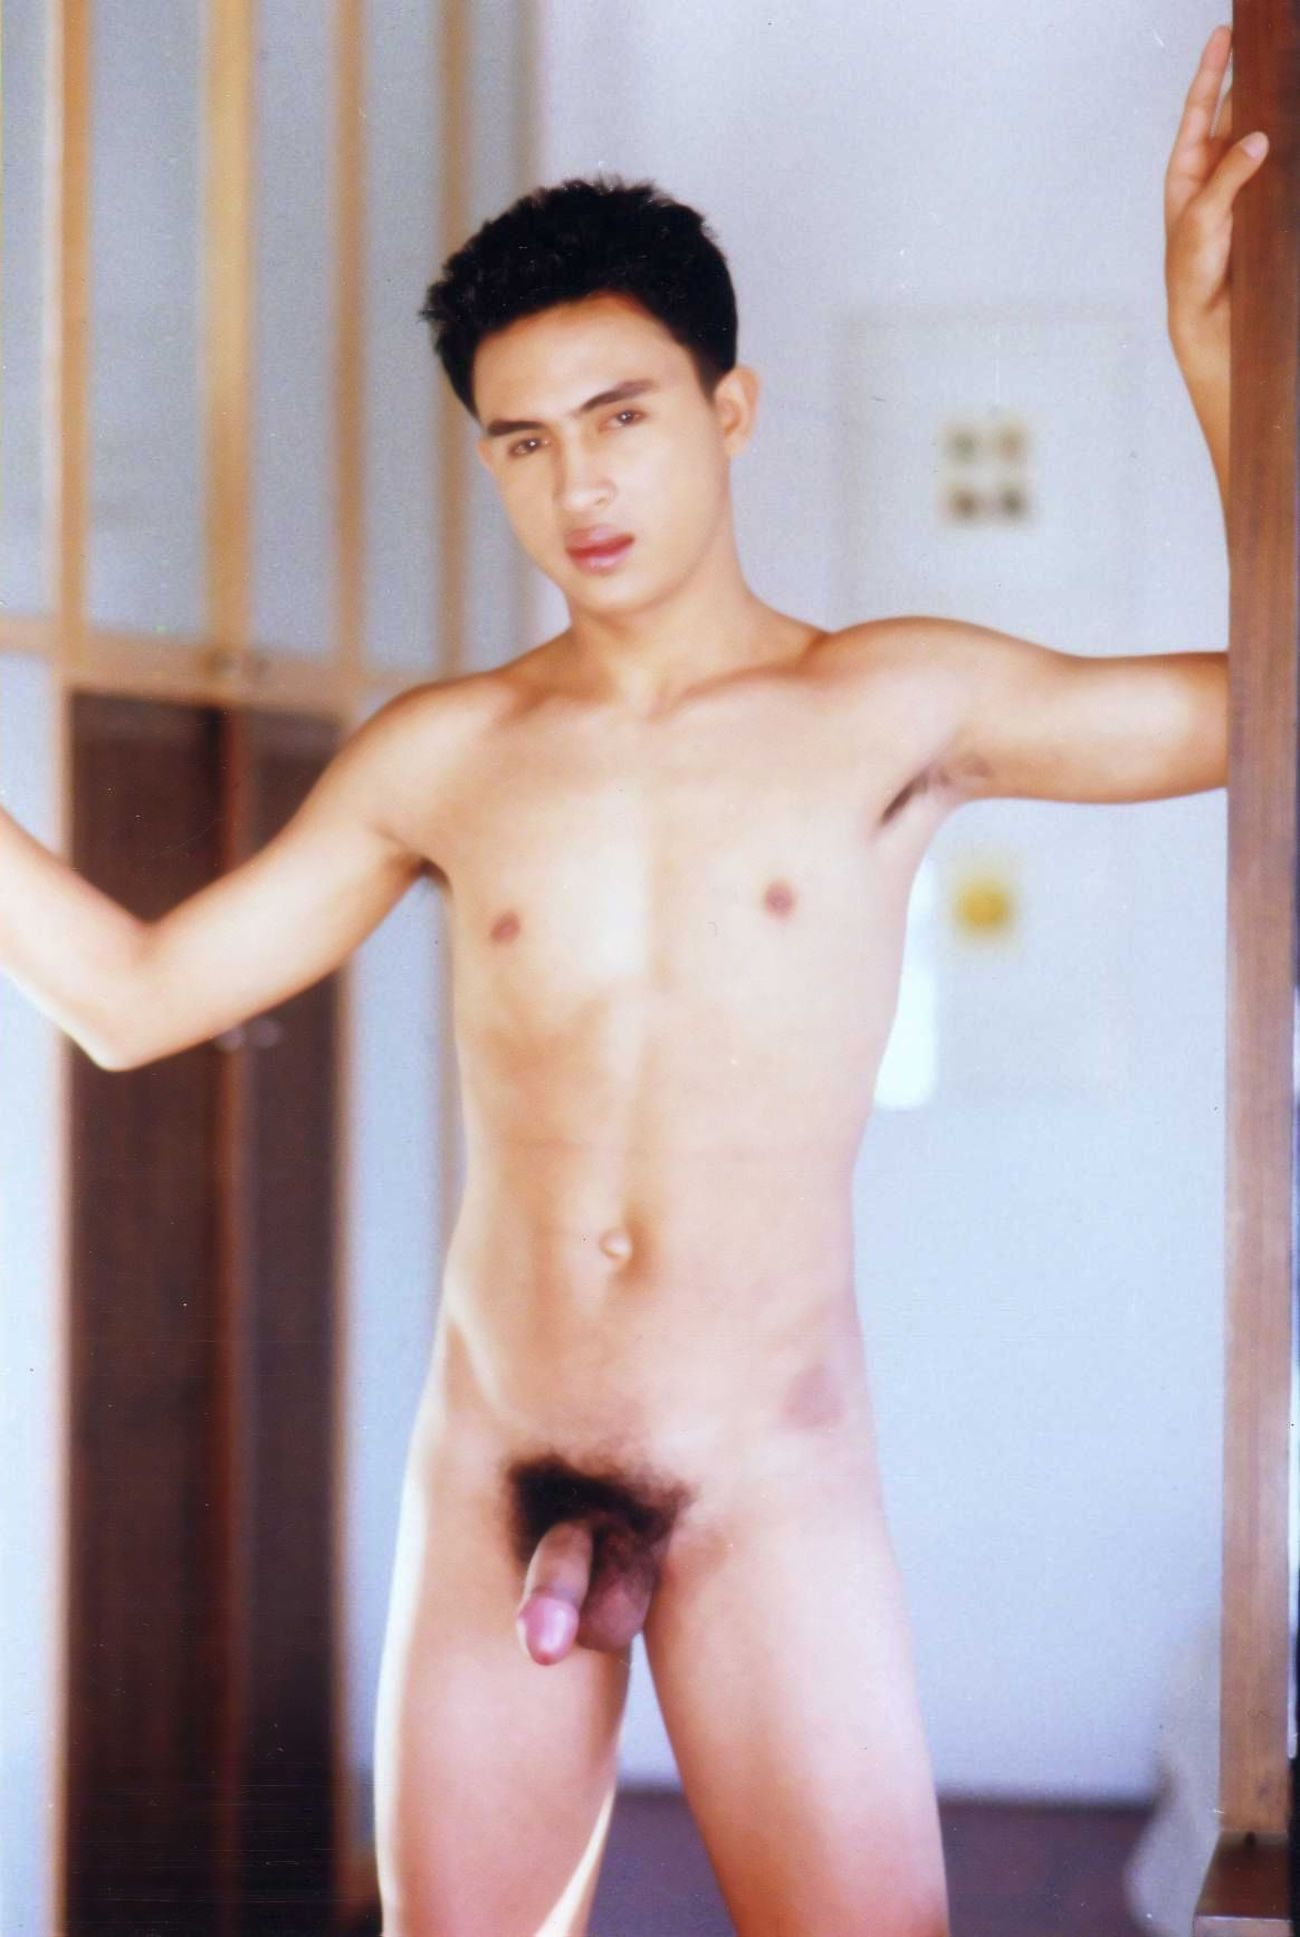 from Braydon thai gay escort